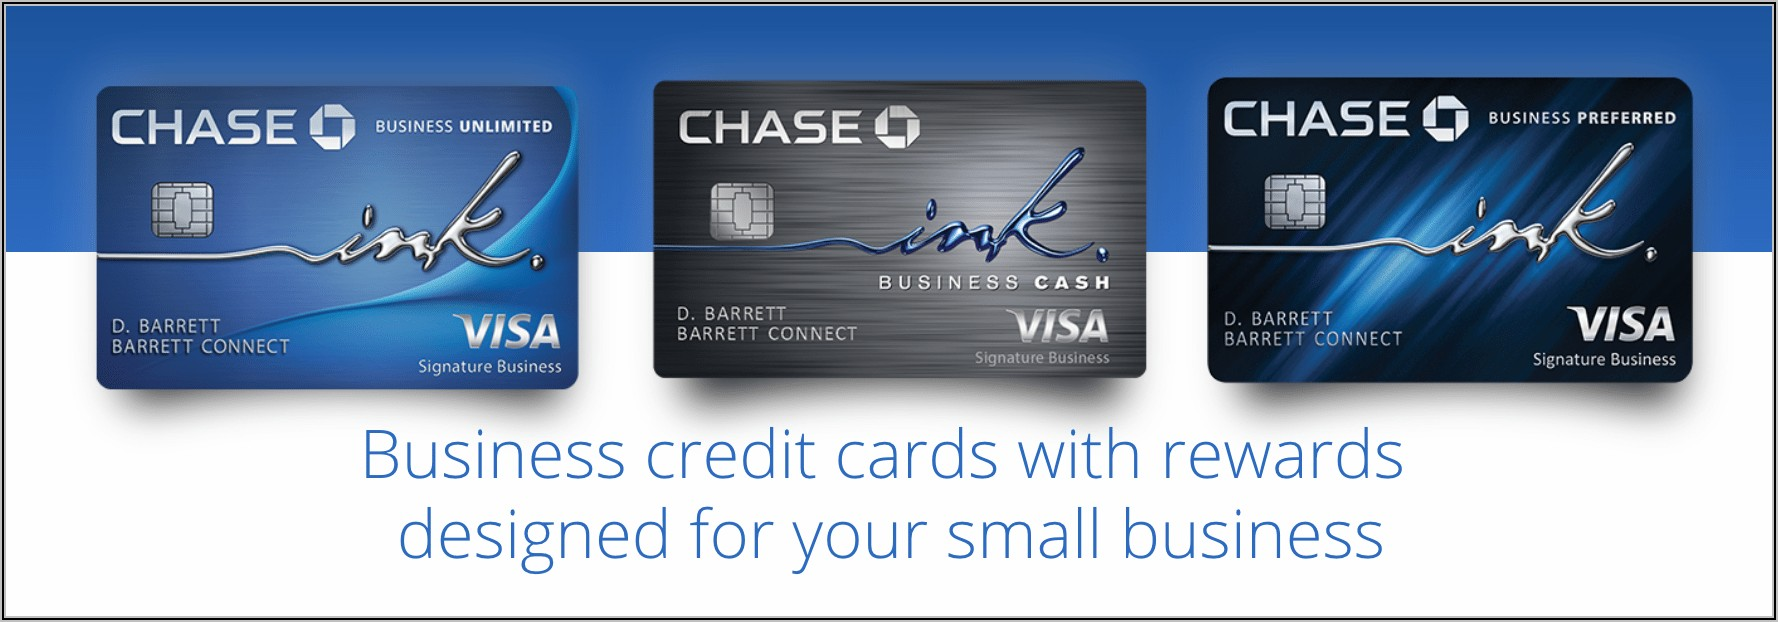 Chase Ink Business Card Customer Service